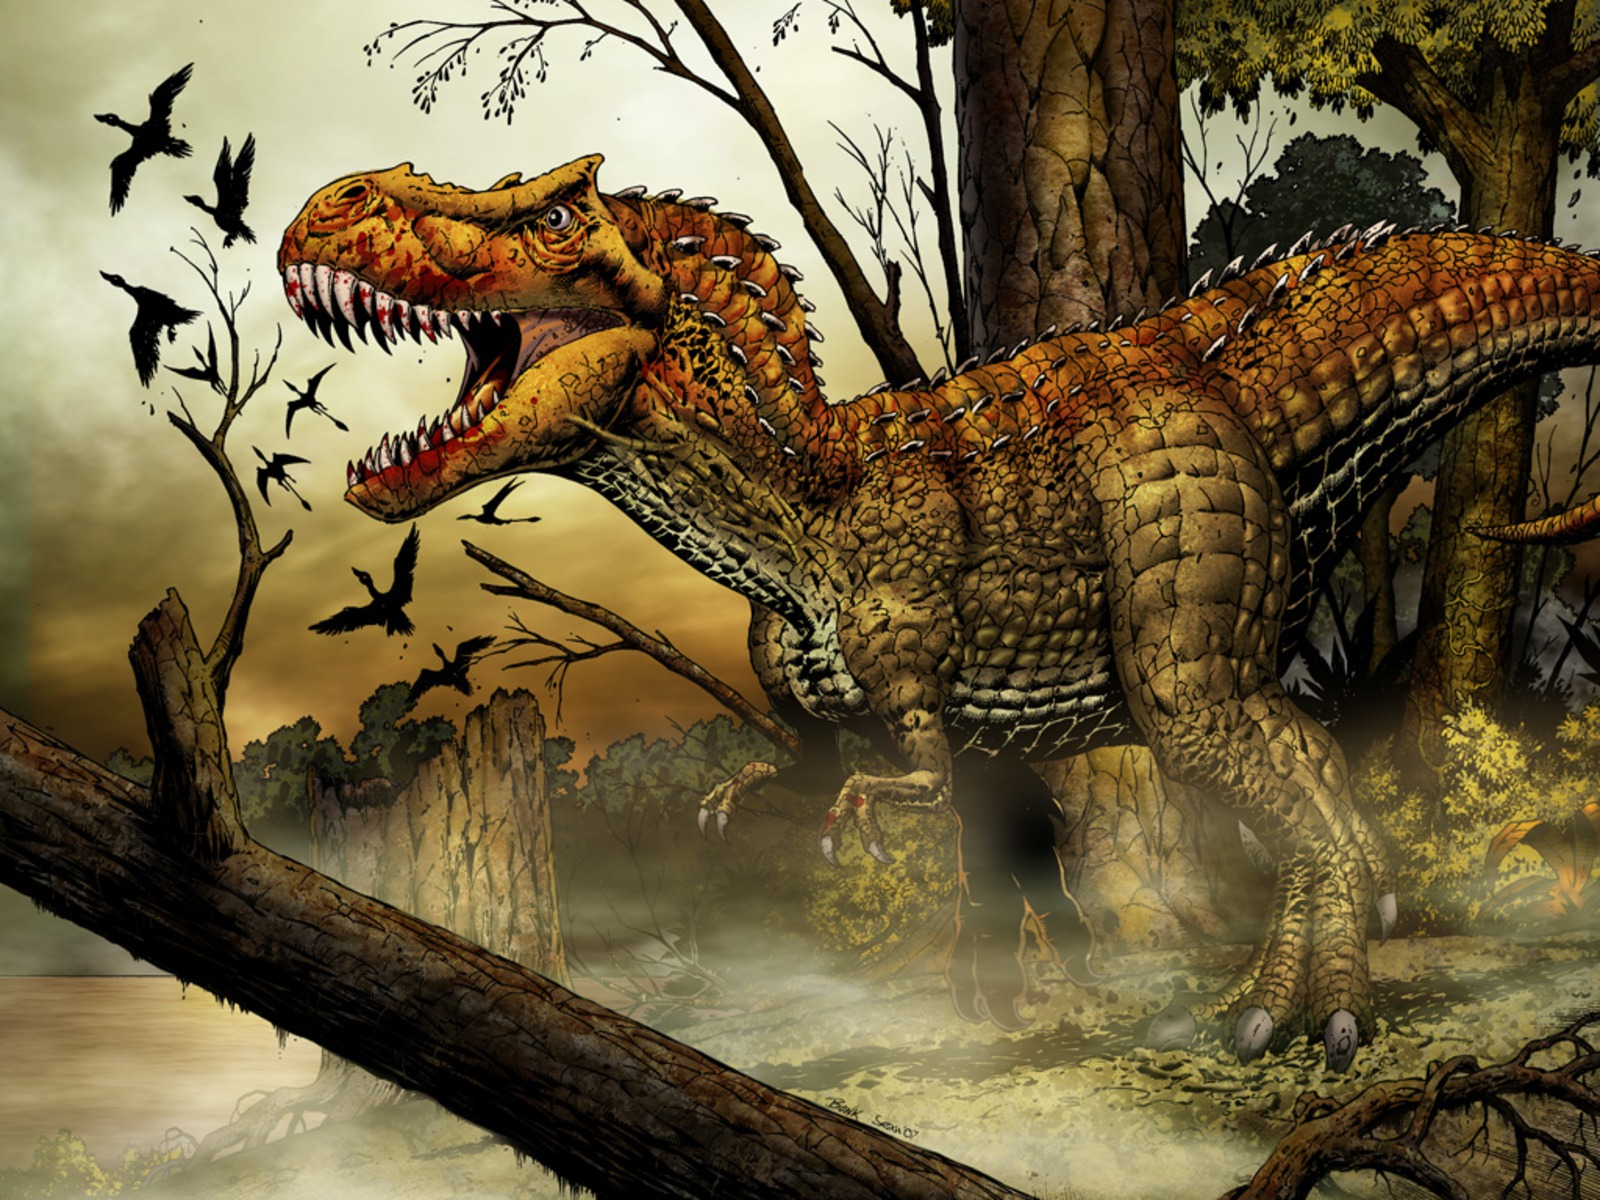 High Definition Photo And Wallpapers: dinosaur wallpapers,dinosaur wallpaper,dinosaurs wallpaper ...